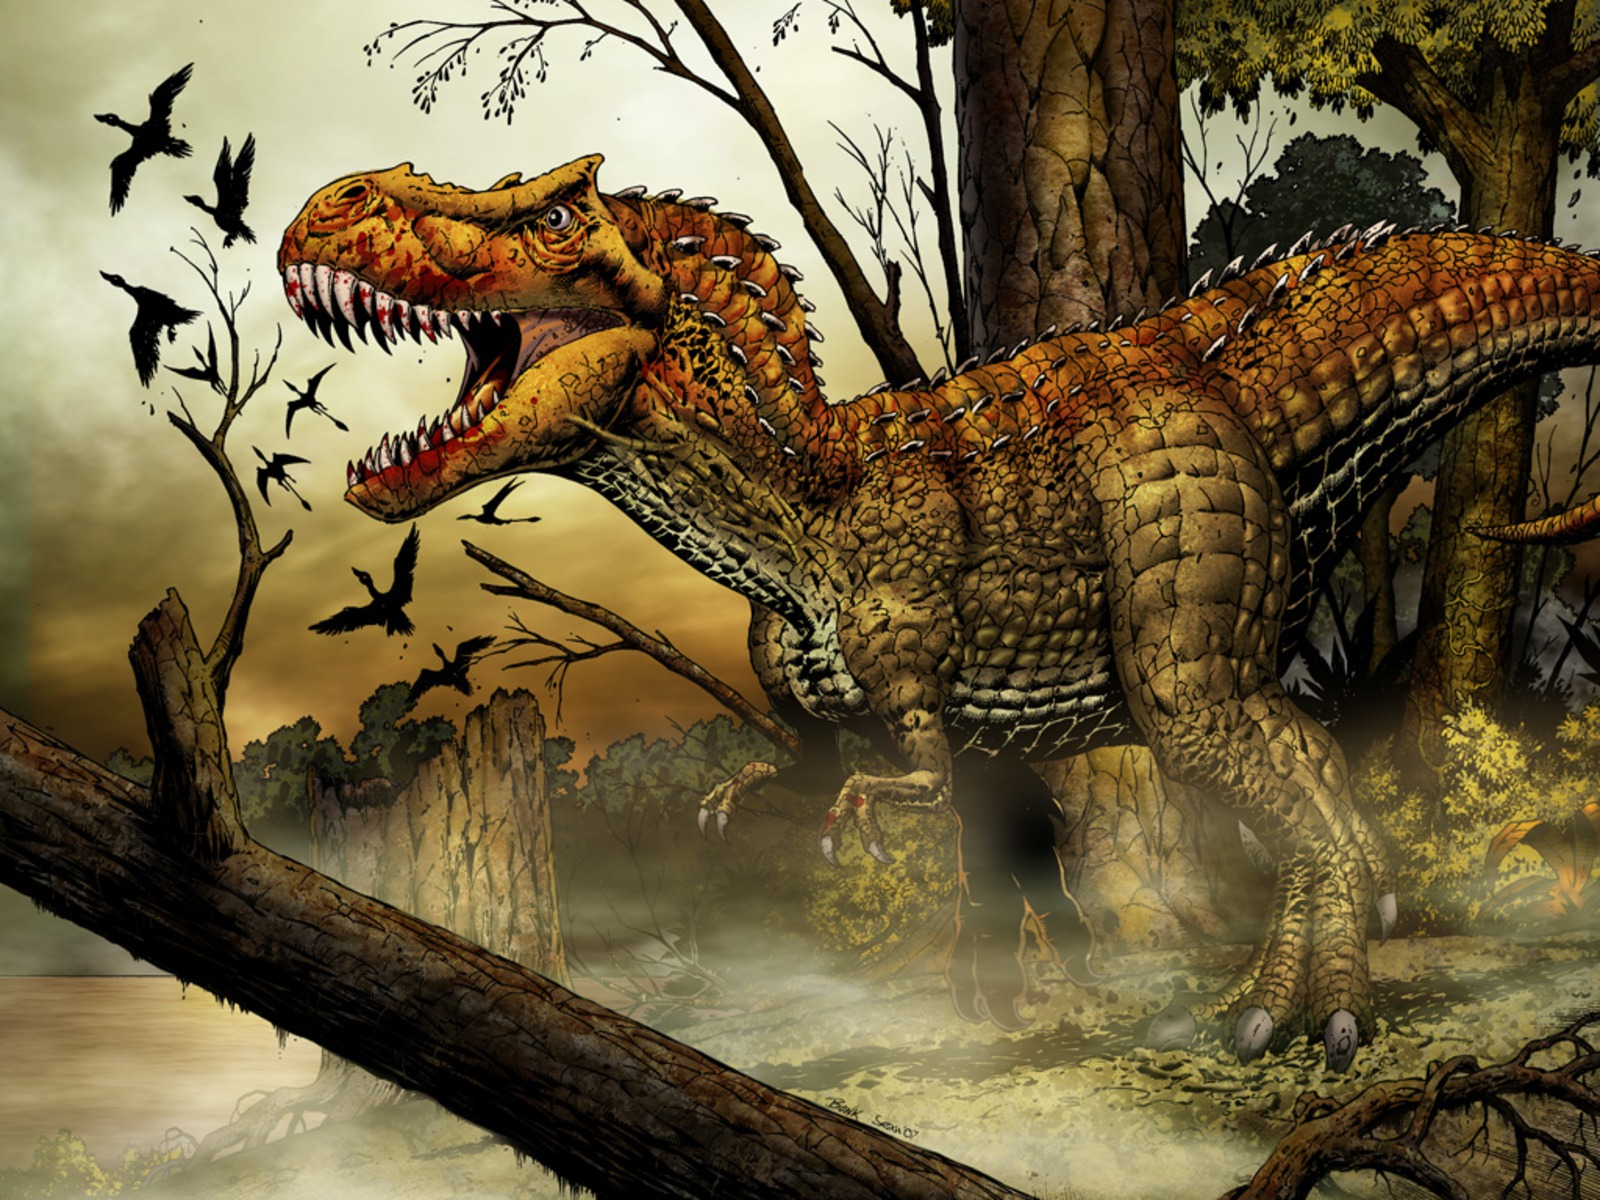 High Definition Photo And Wallpapers: dinosaur wallpapers,dinosaur wallpaper,dinosaurs wallpaper ...